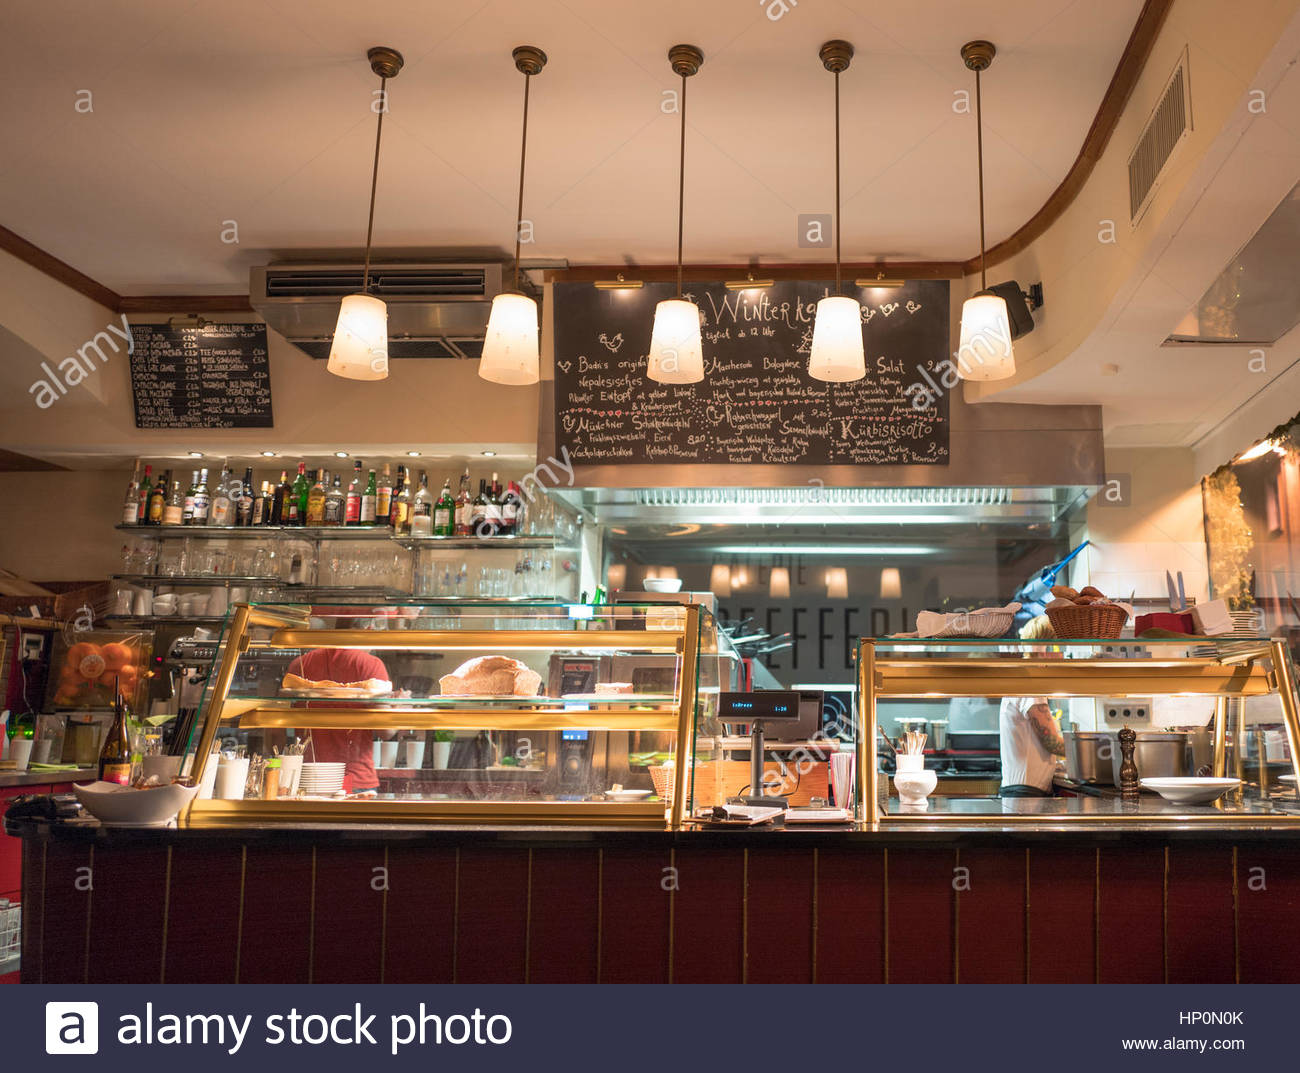 Bakery Display Cabinet Interior Cafe Bakery Display Cabinet Restaurant Stock Photo